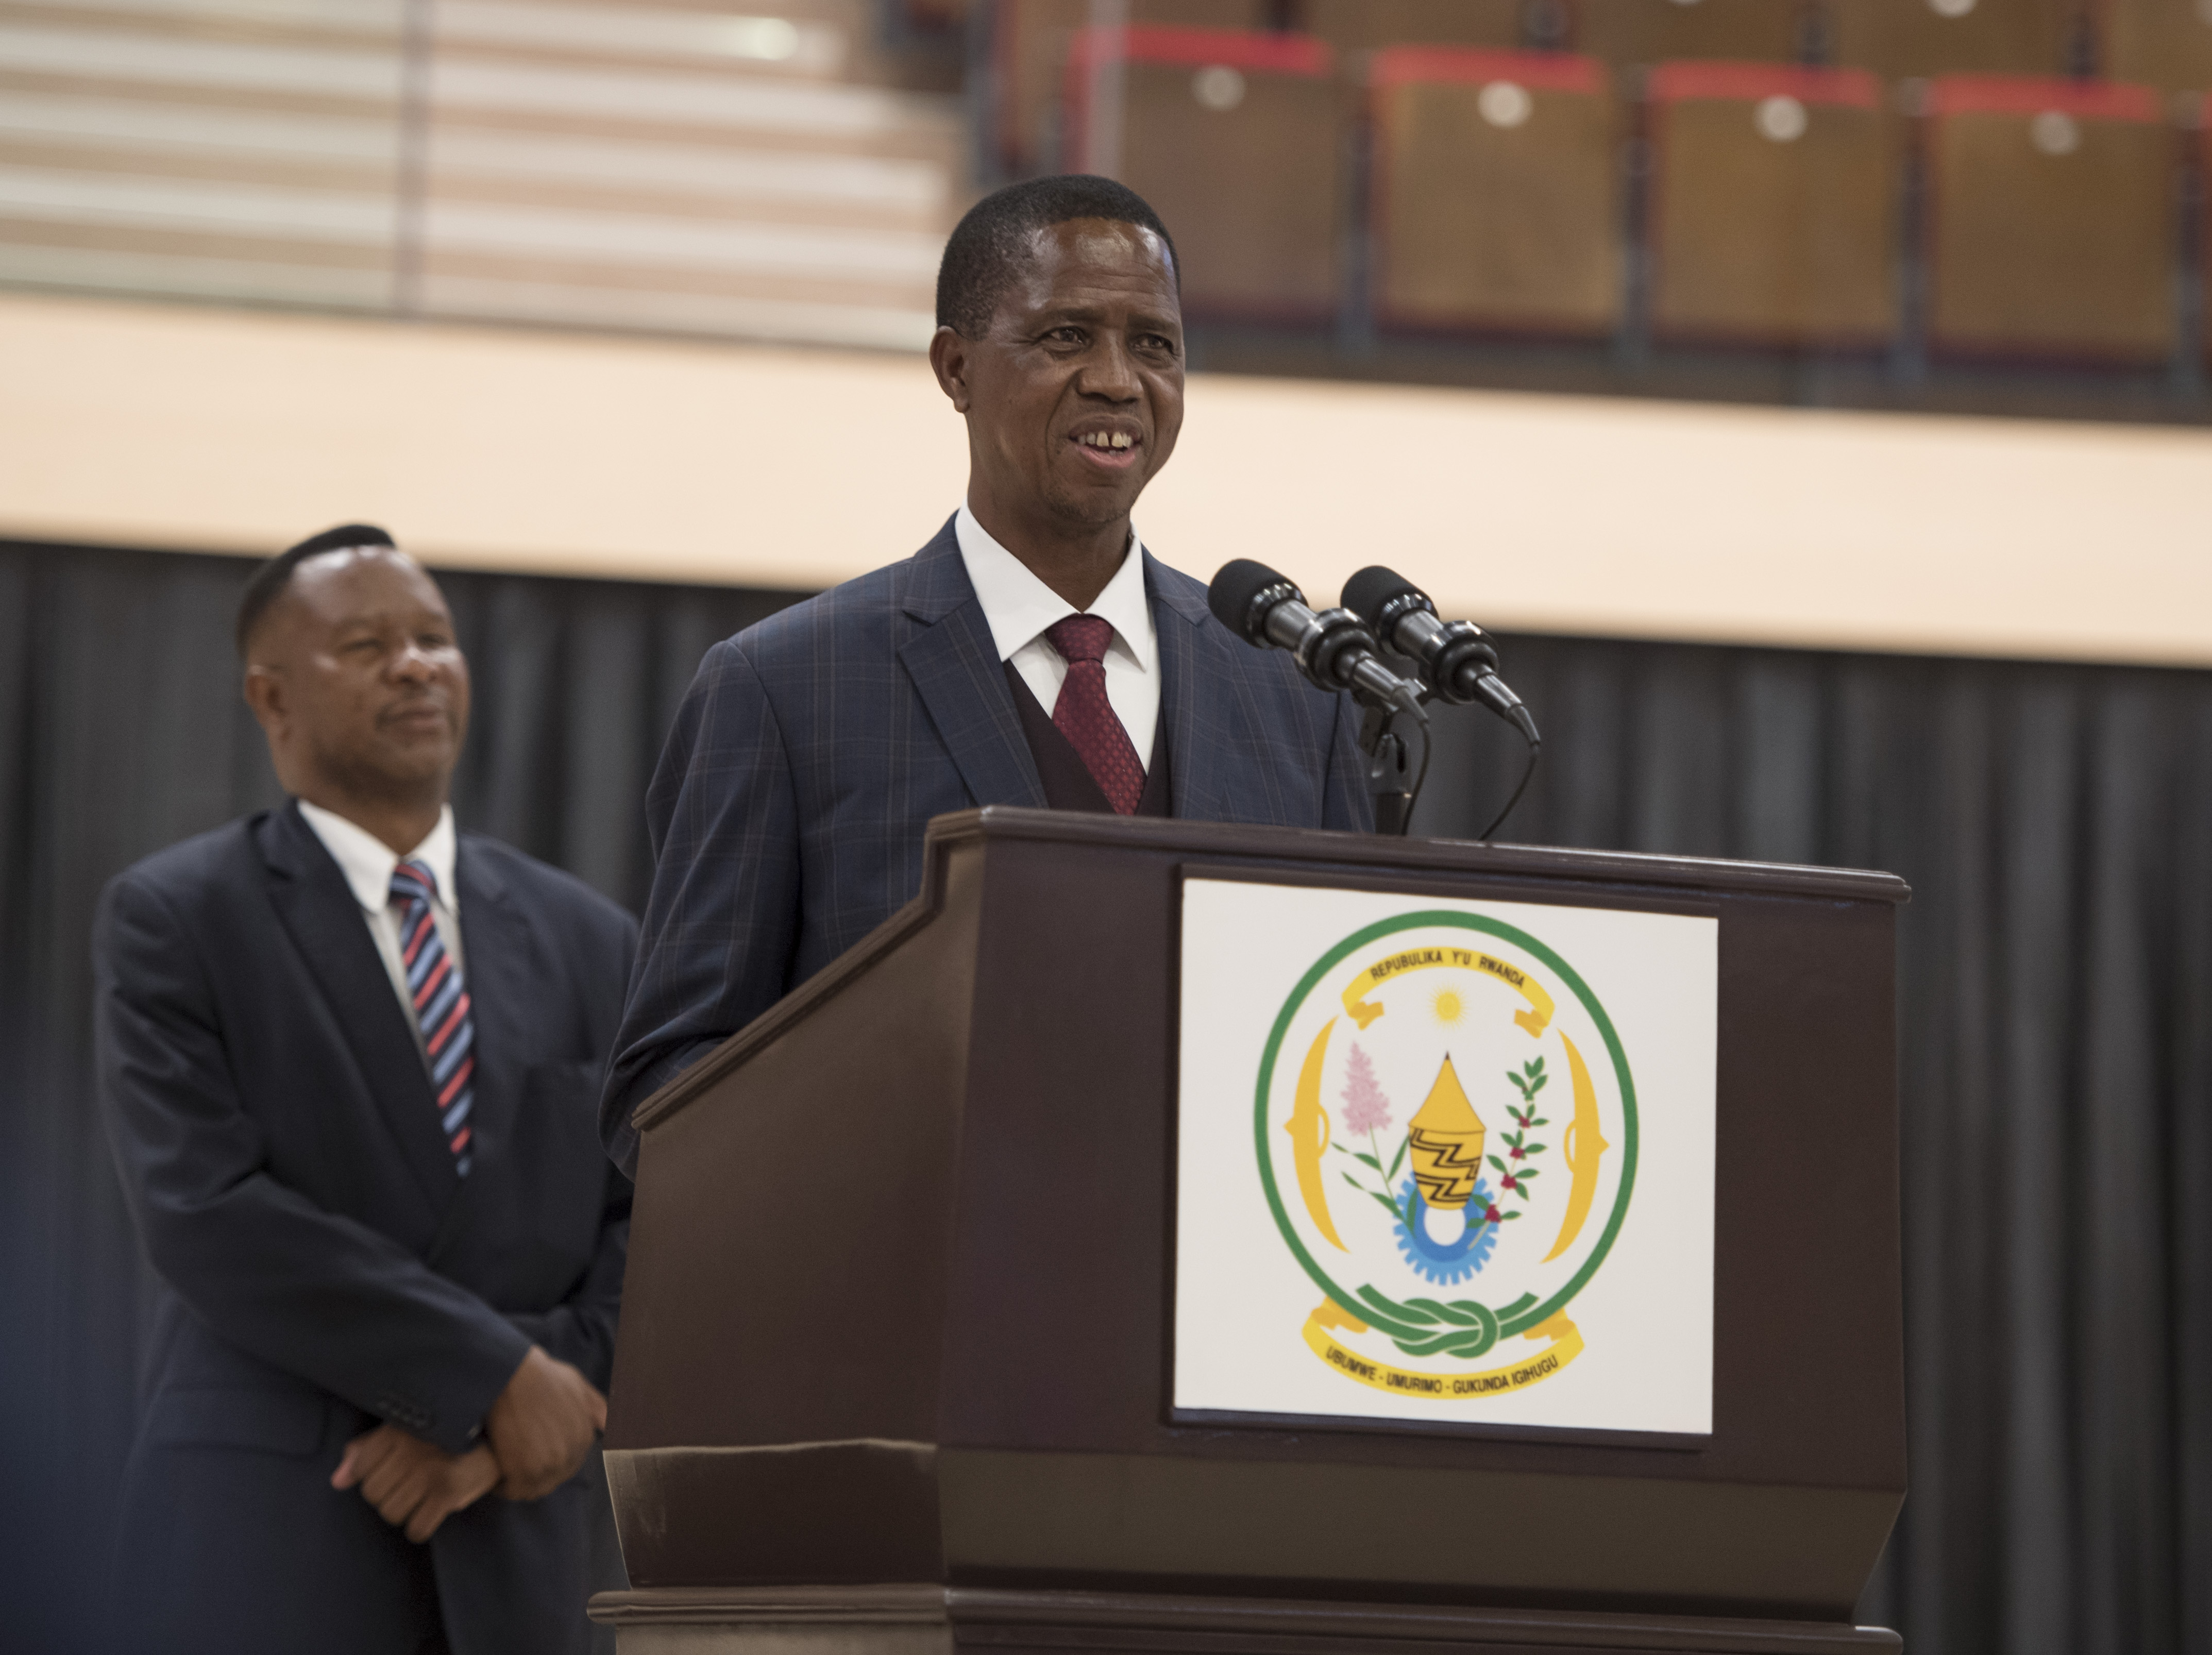 President Edgar Lungu of Zambia (photo credit: Paul Kagame/flickr)